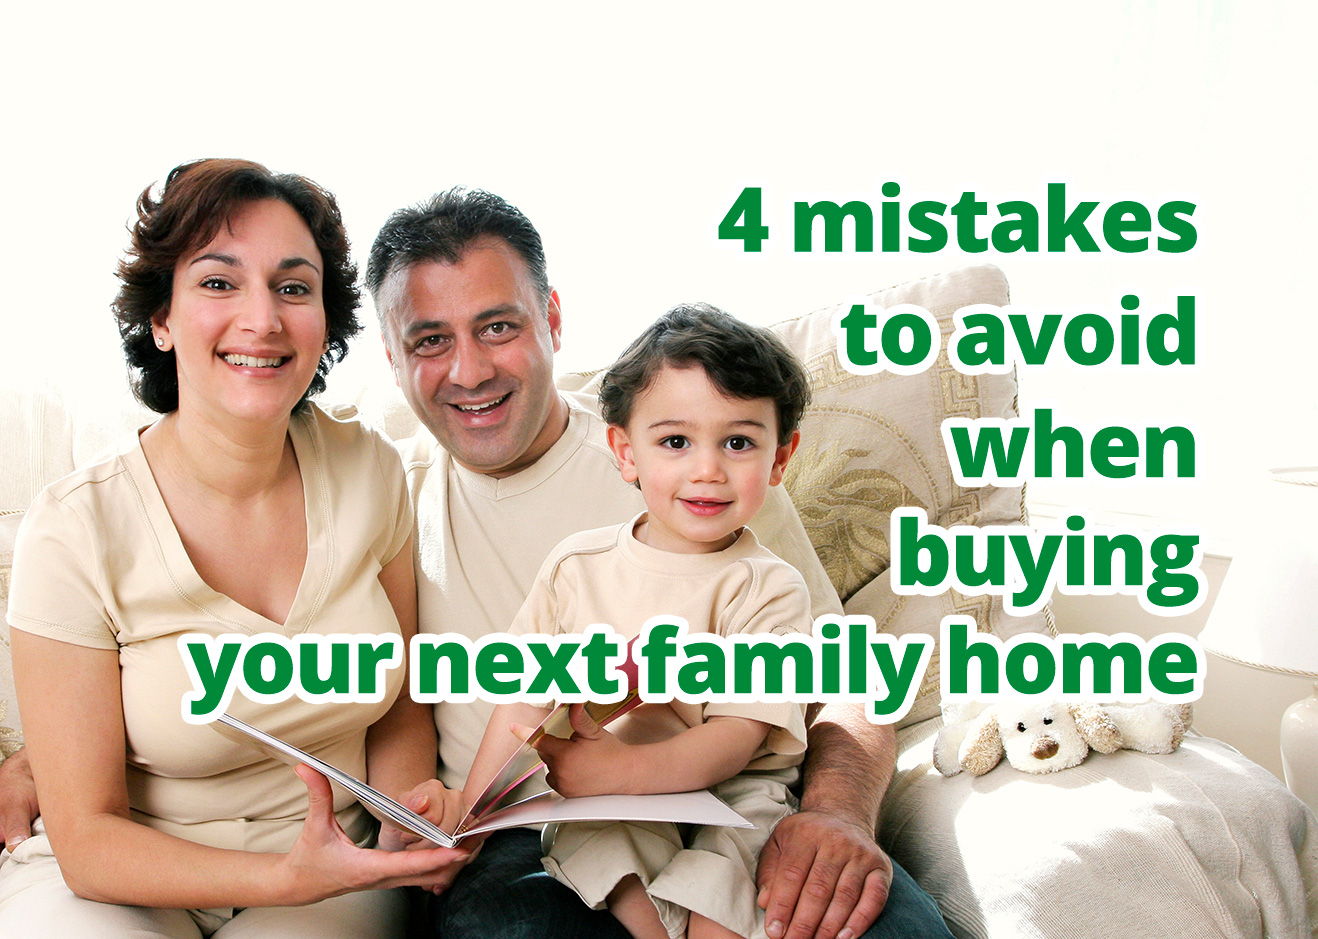 4 mistakes to avoid when buying your next family home